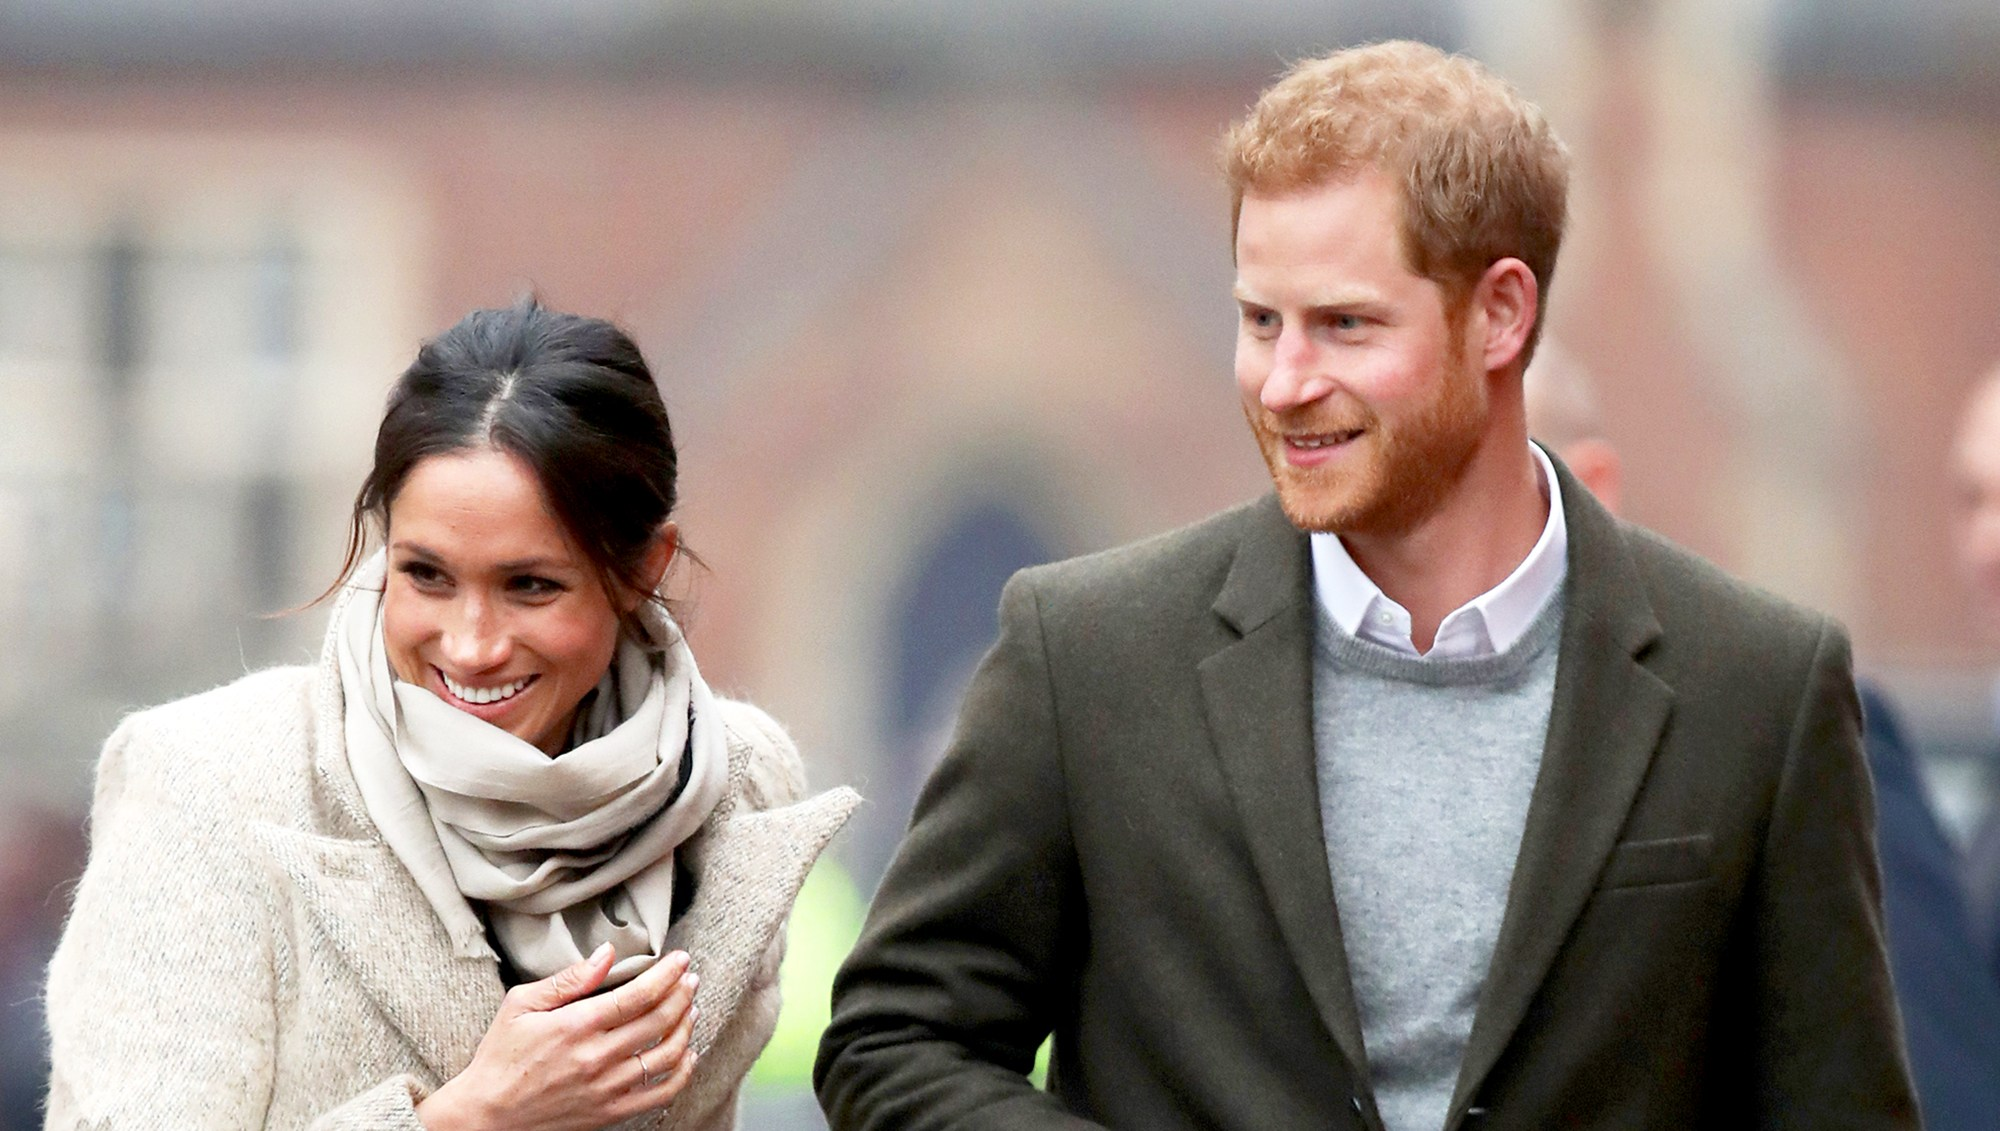 Meghan Markle and Prince Harry visit Reprezent 107.3FM on January 9, 2018 in London, England.